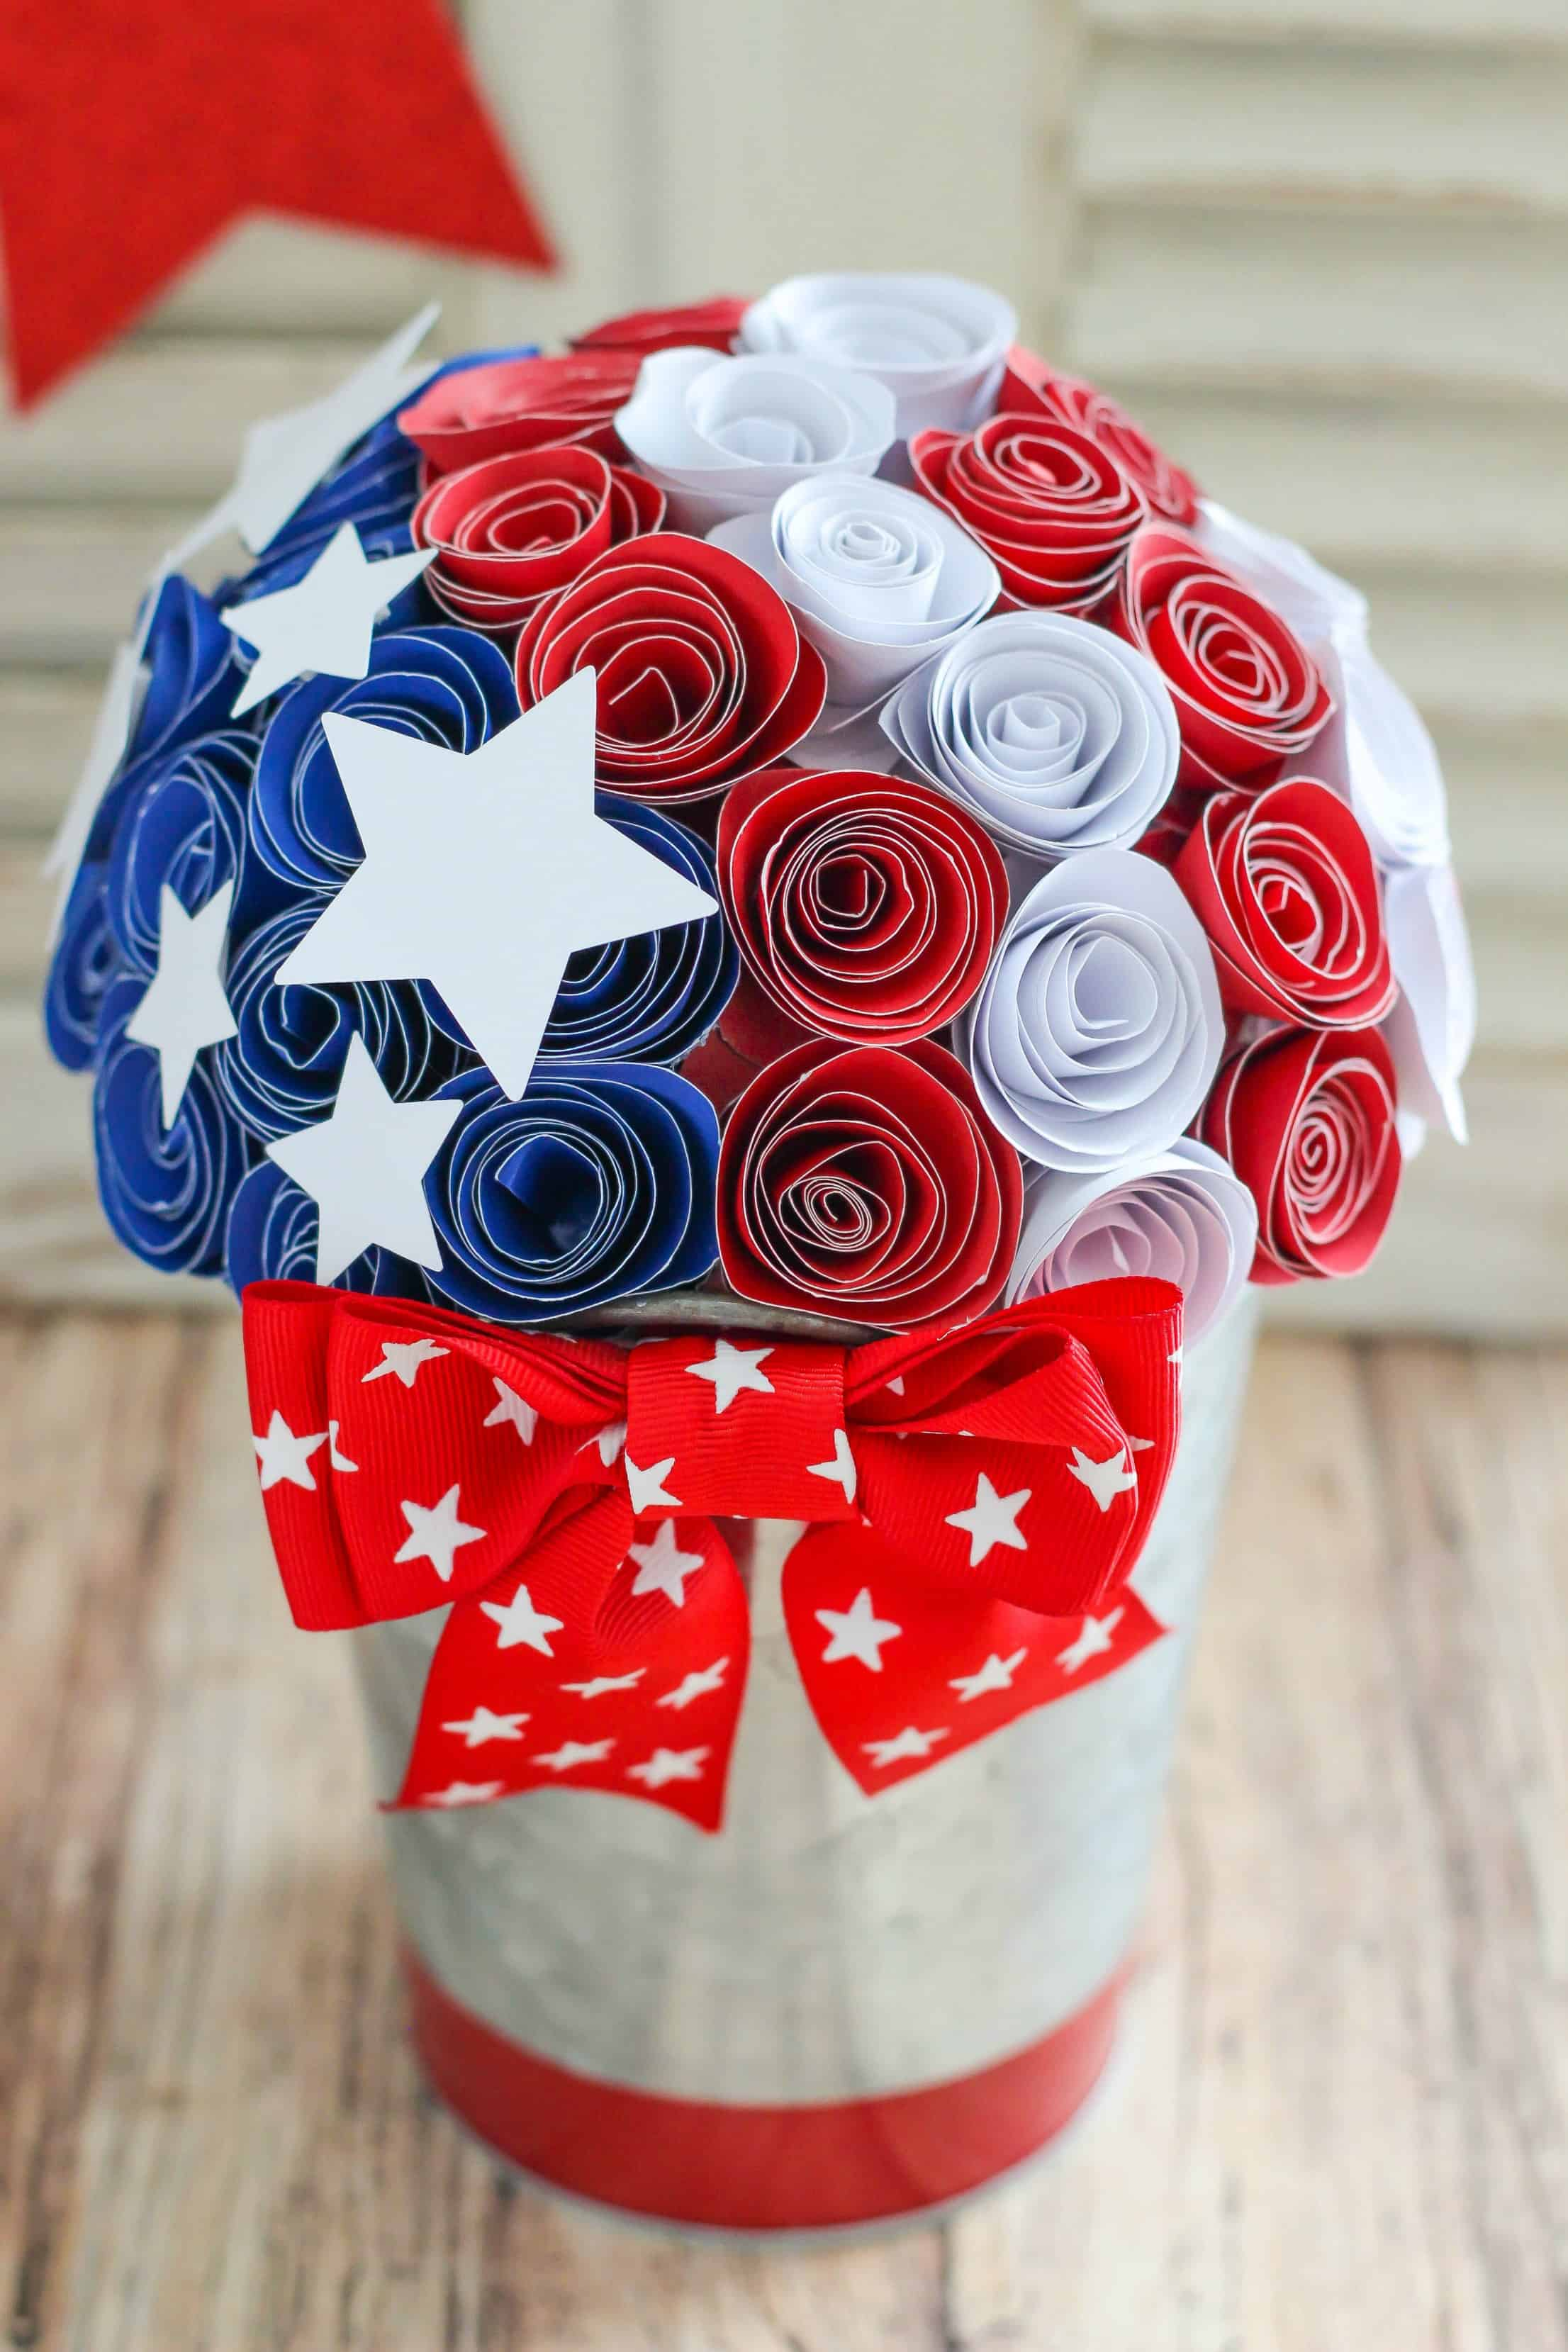 Create this Red, White and Blue Paper Flower Centerpiece with inexpensive supplies and easy steps for your holiday entertaining.